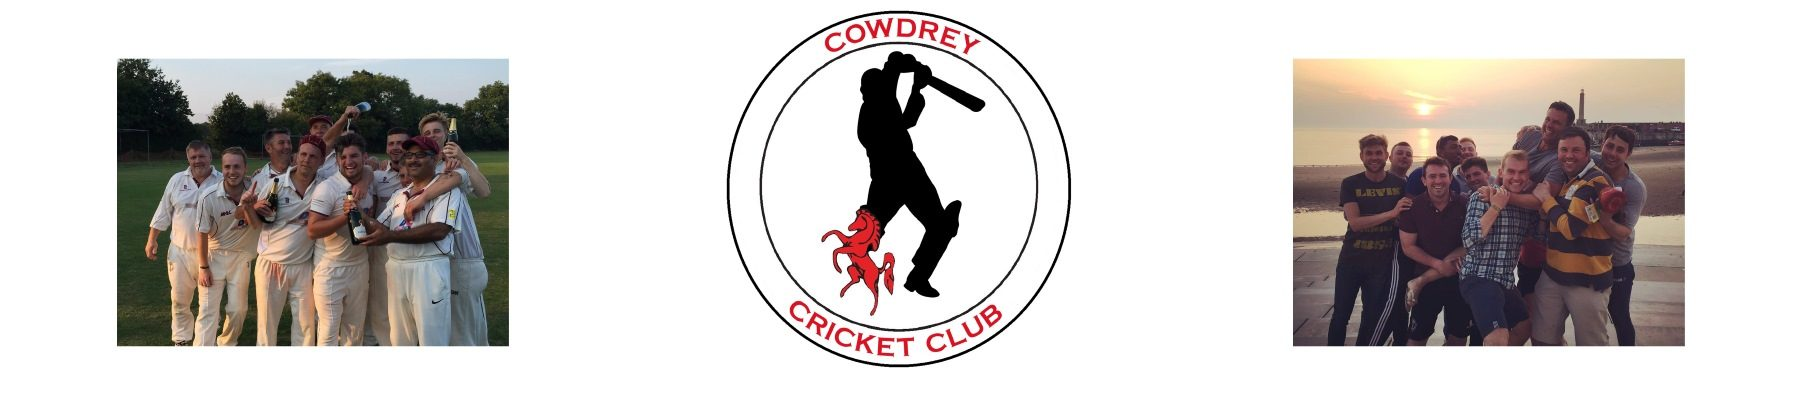 Cowdrey Cricket Club